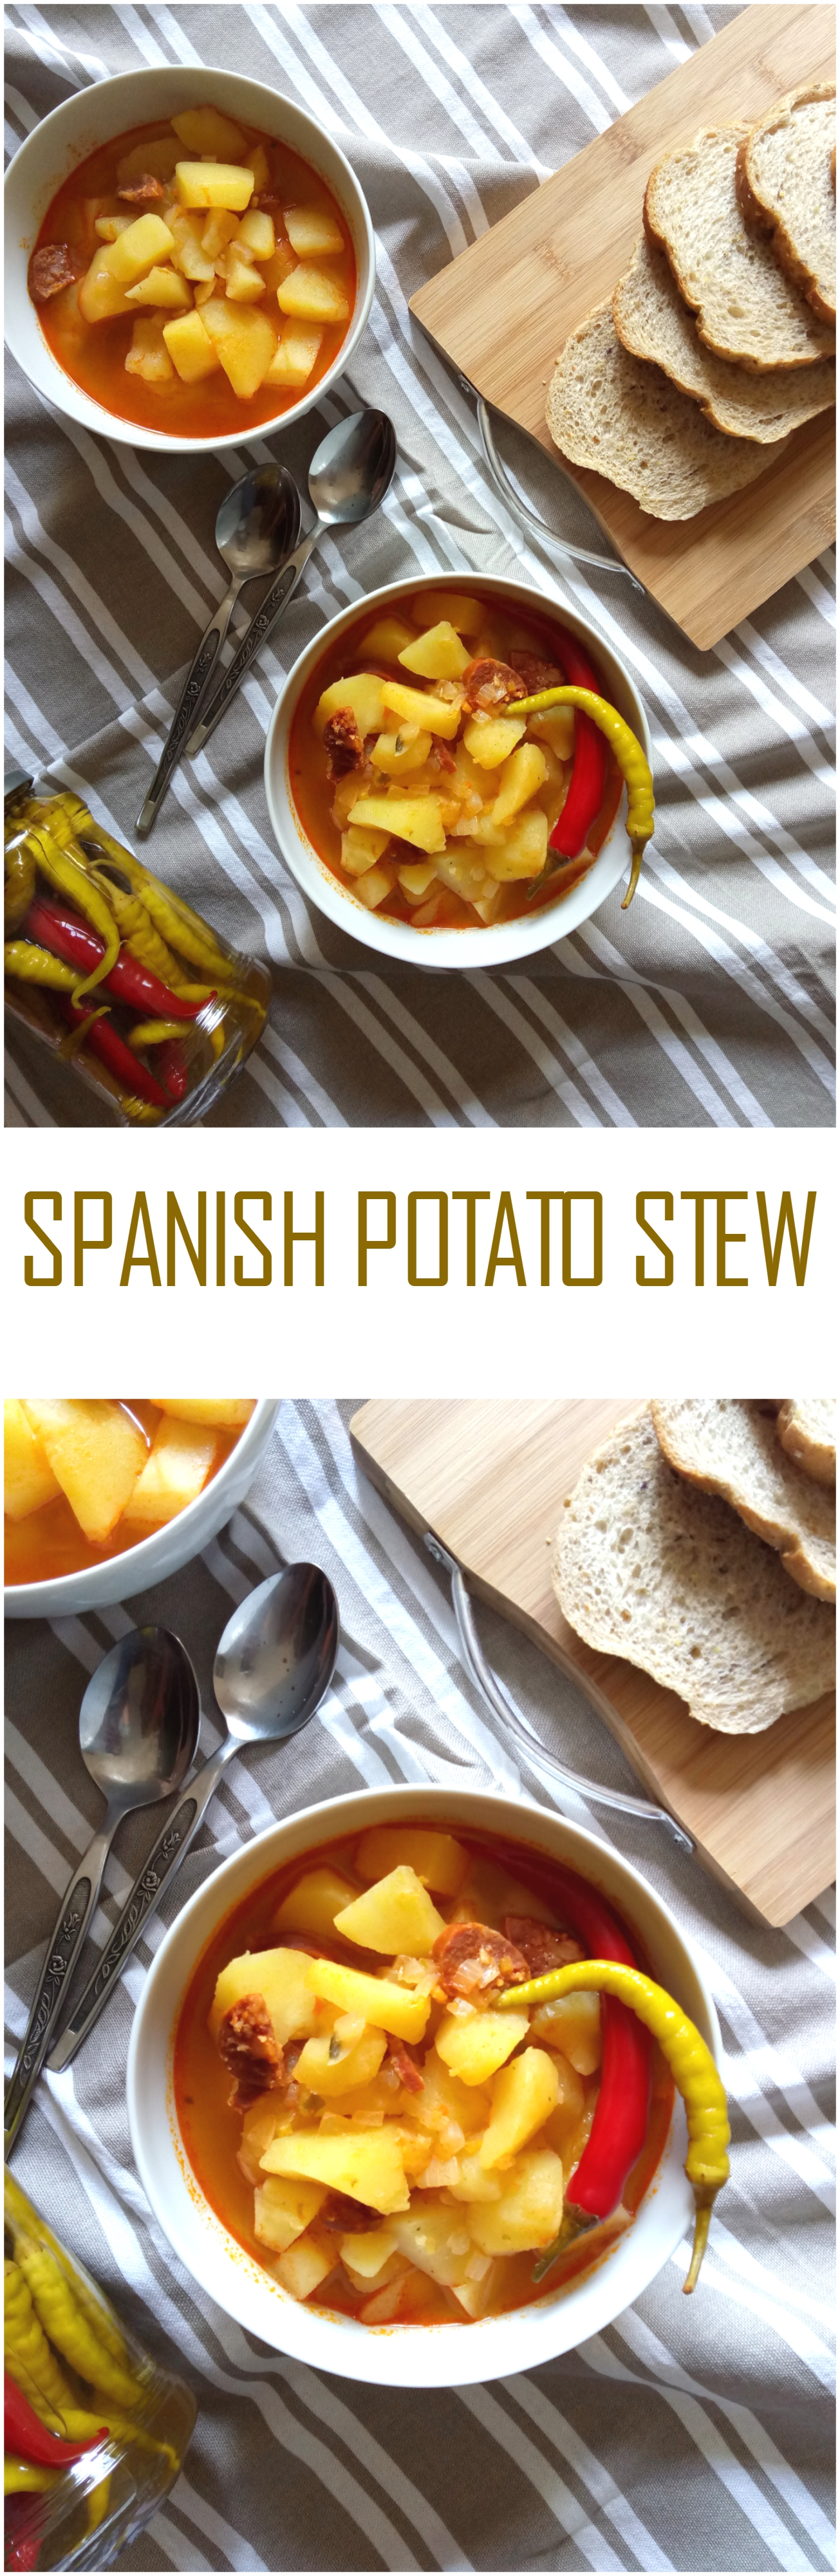 Spanish Potato Stew (Patatas a la Riojana)